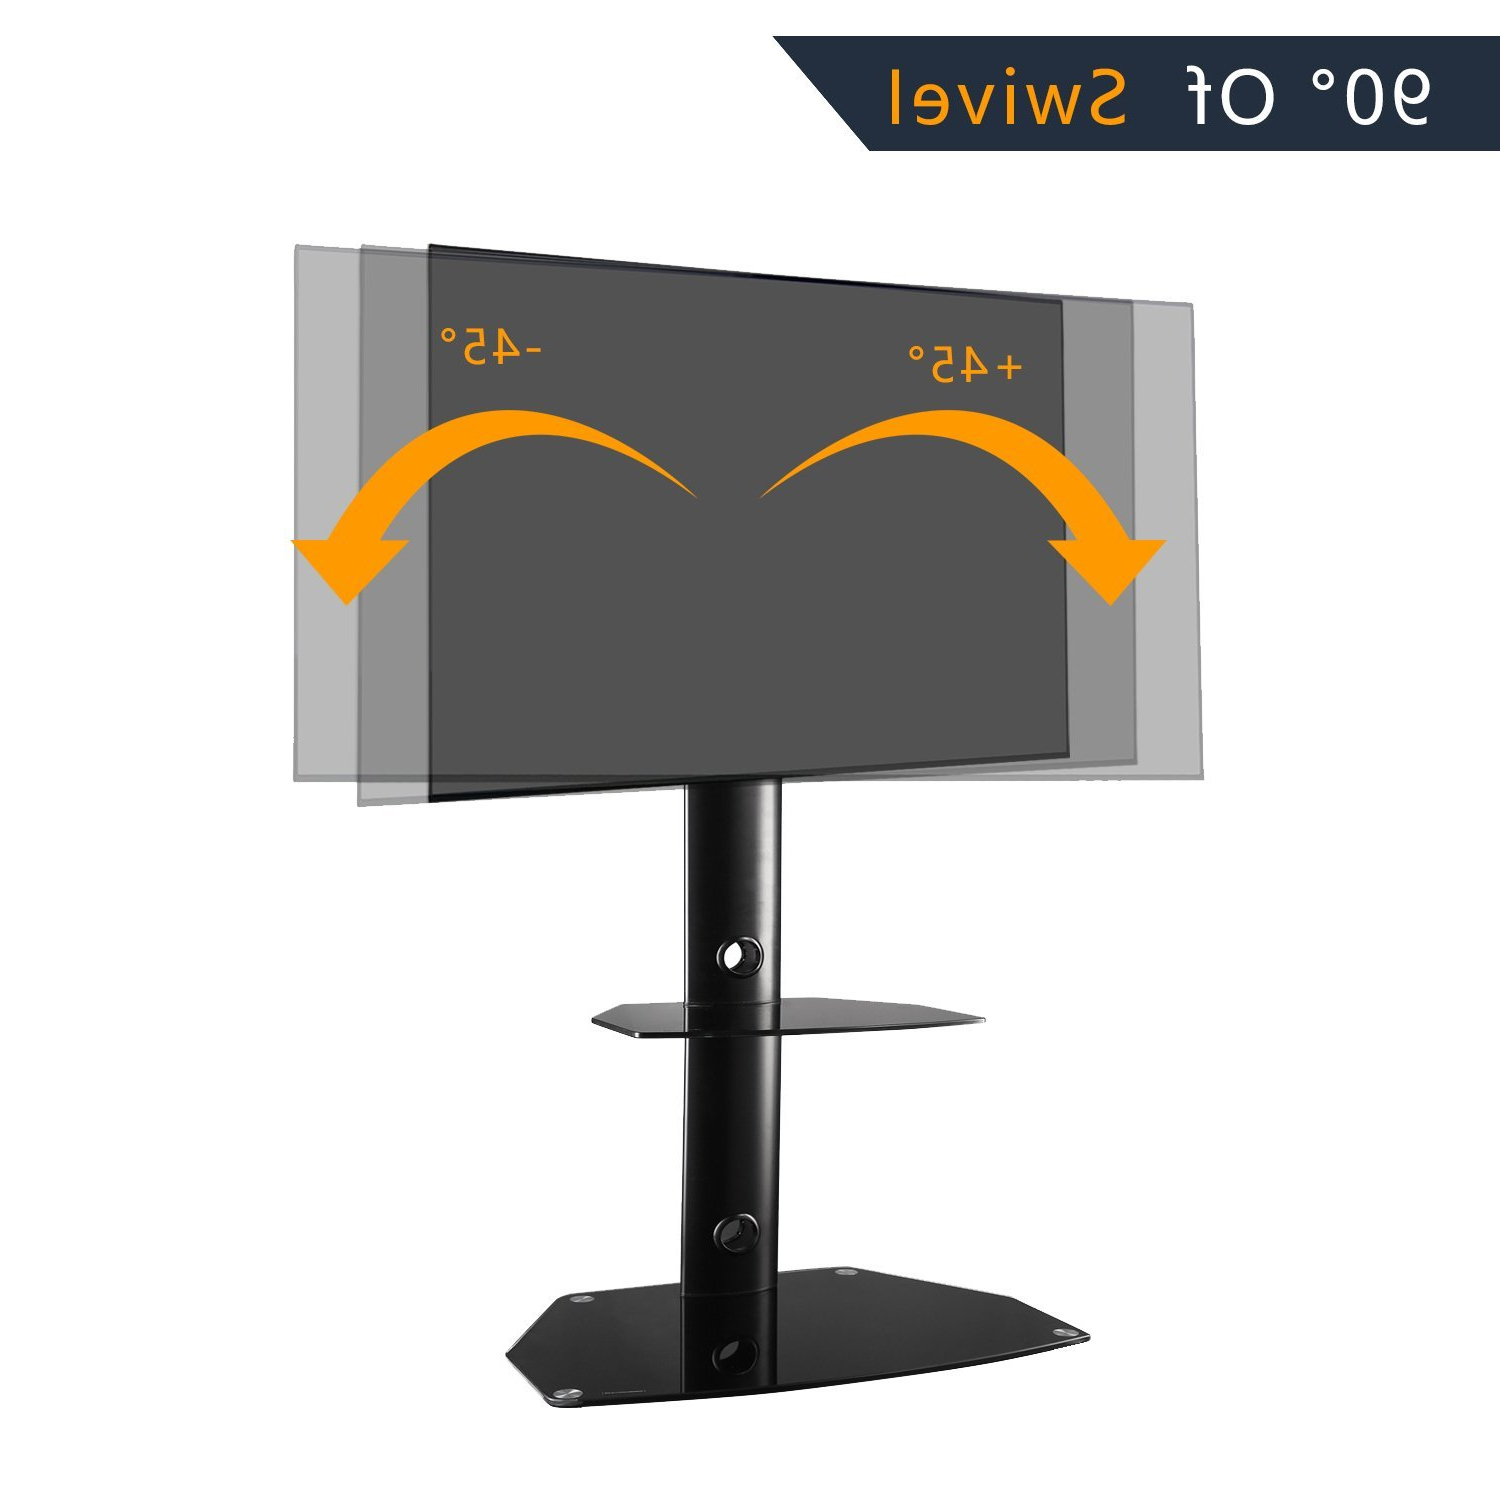 Rfiver Tavr Furniture Modern Black Swivel Mount Floor Tv With Floor Tv Stands With Swivel Mount And Tempered Glass Shelves For Storage (View 7 of 20)